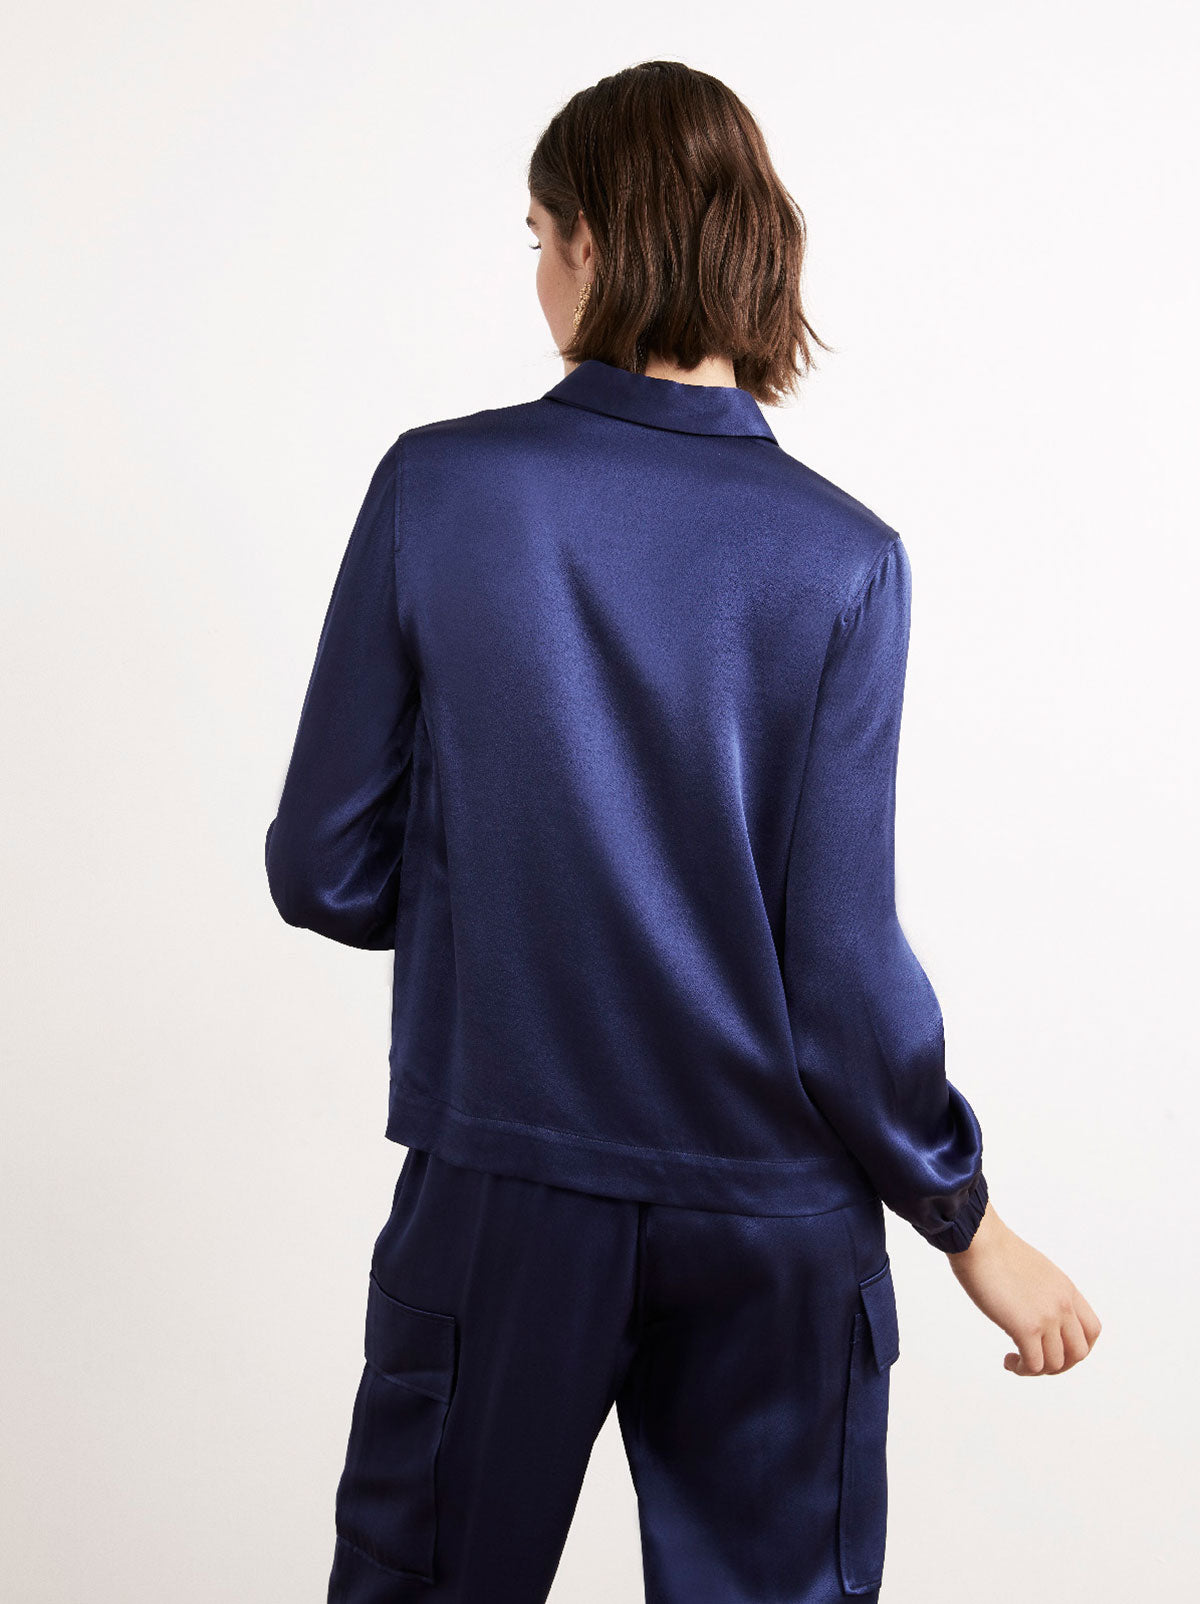 Kendra Navy Satin Zip Blouse by KITRI Studio